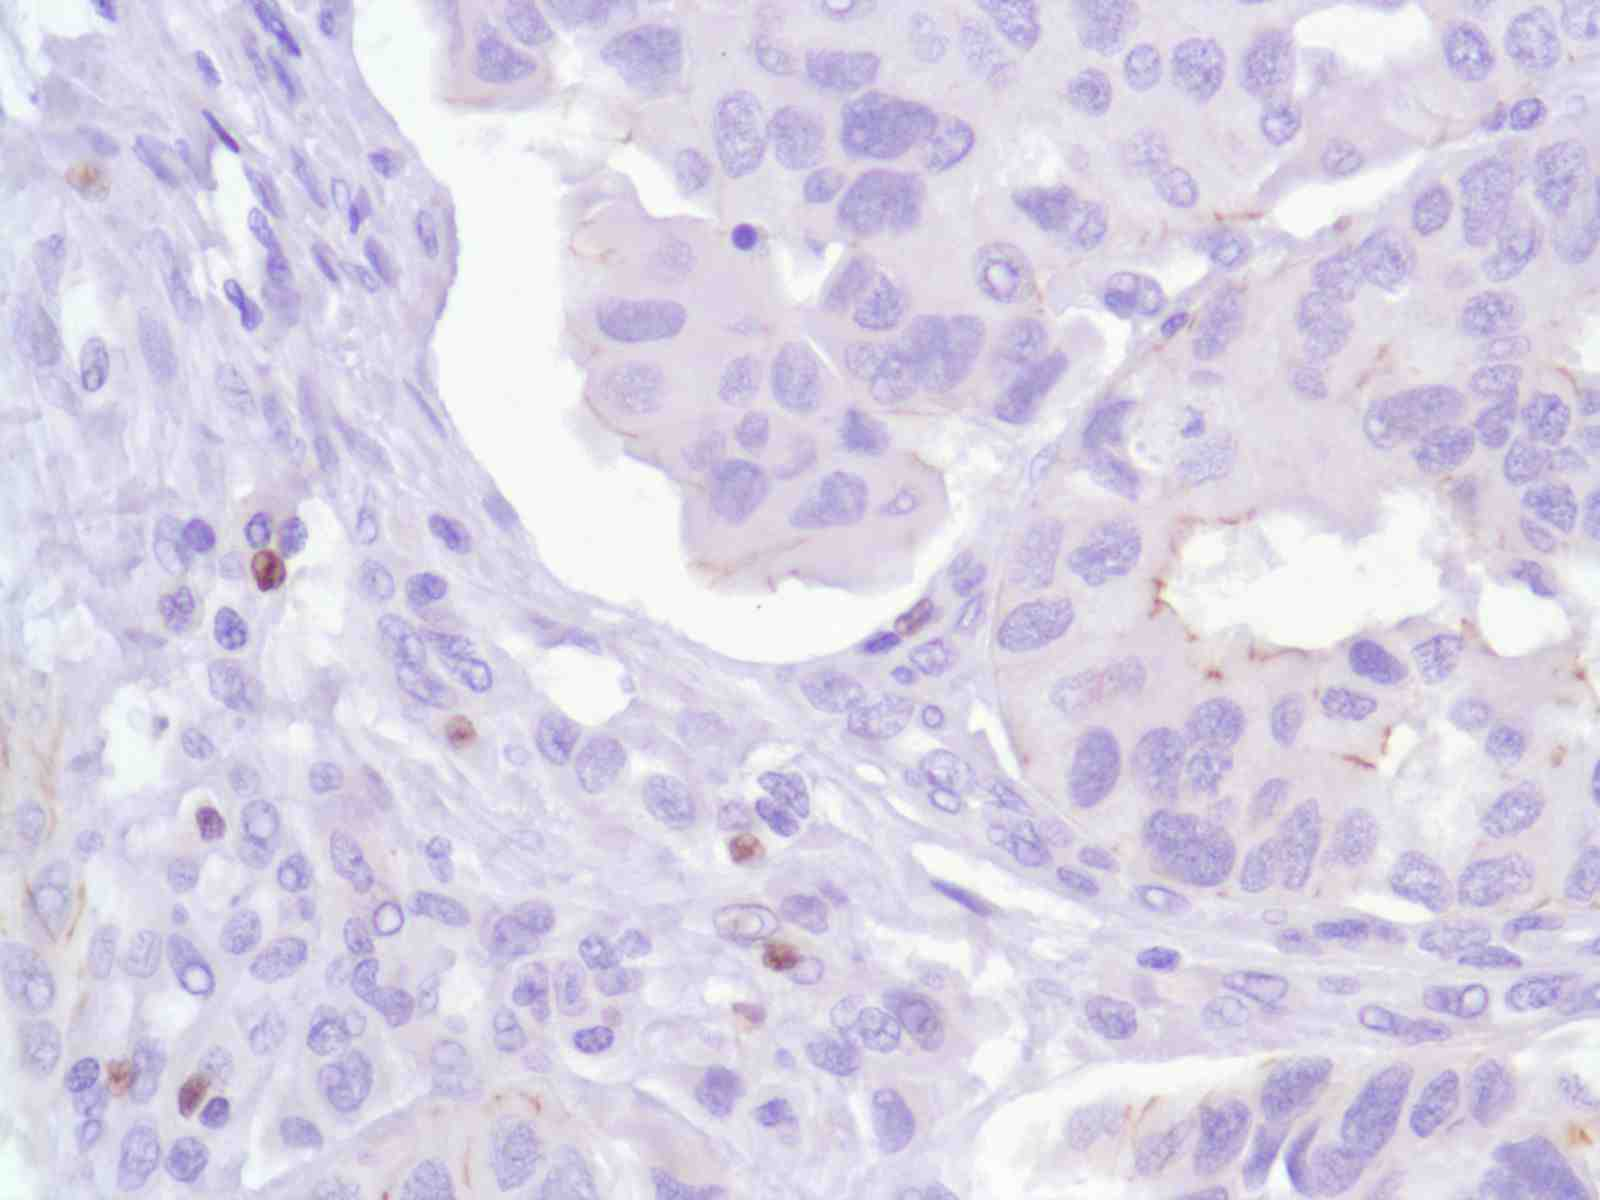 Human Bladder Transitional Cell Carcinoma stained with anti-FoxP3 antibody